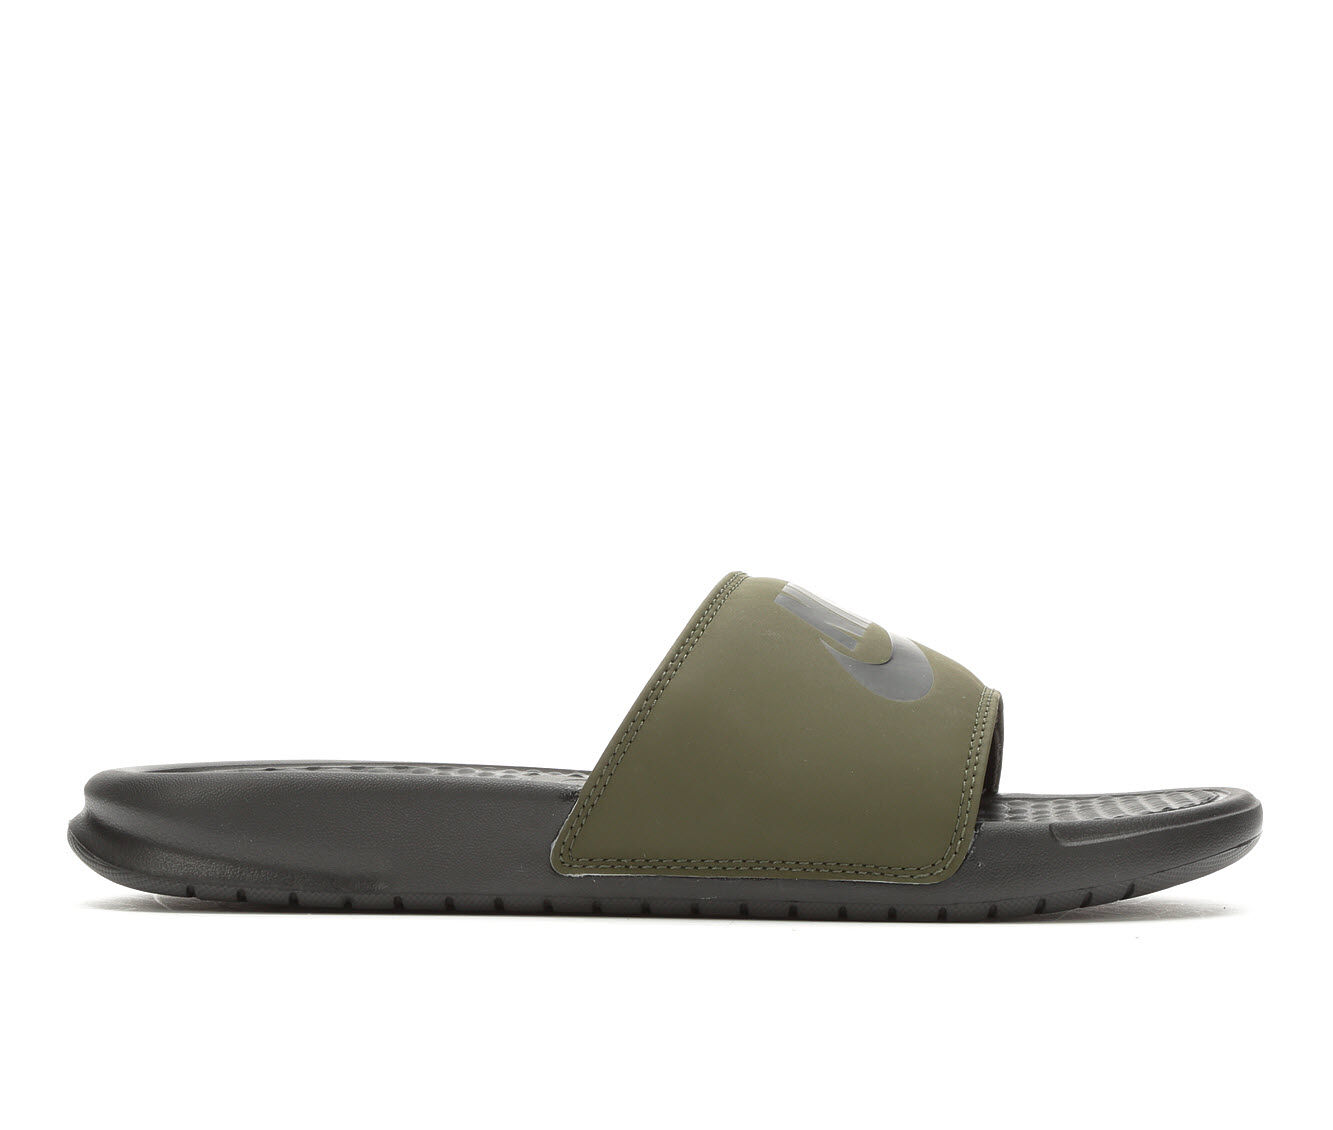 buy cheap new arrivals Men's Nike Benassi JDI Sport Slides Cargo/Black